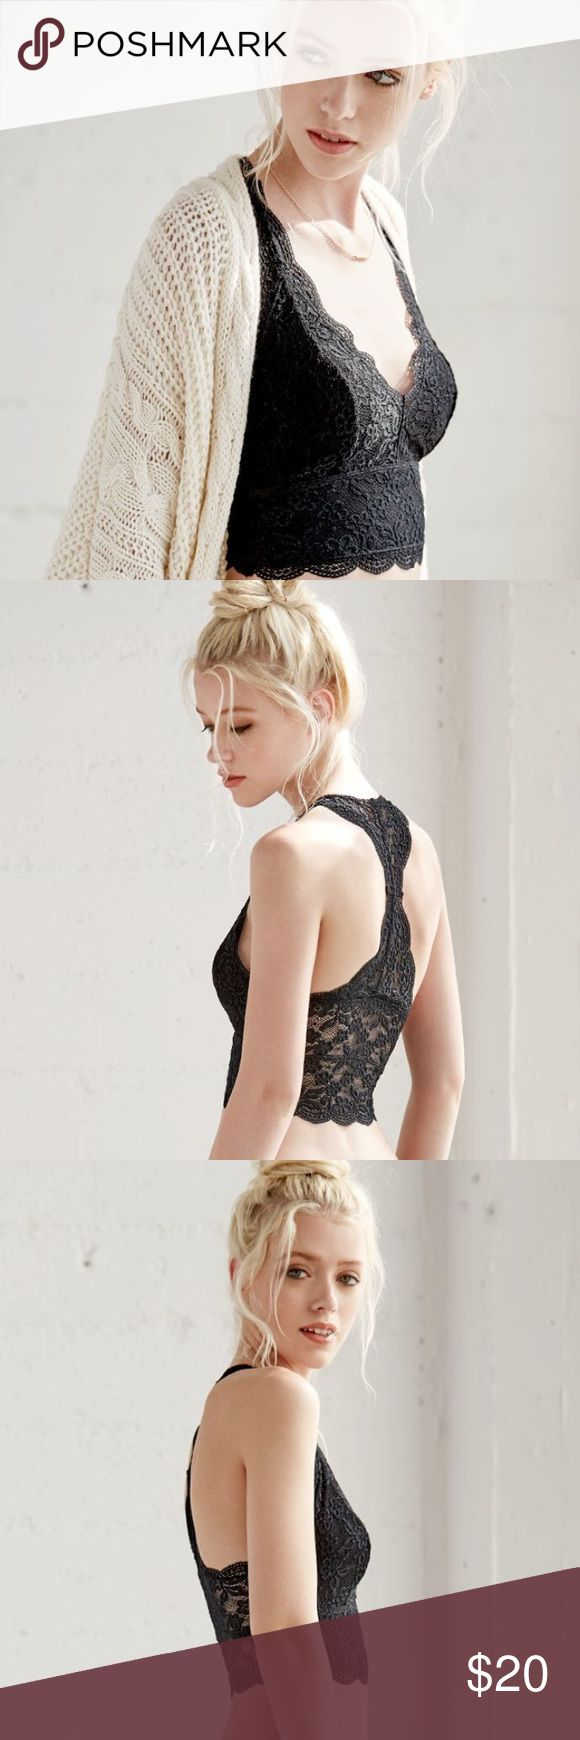 Me To We Lace Racerback Black Bralette Features a delicate lace fabrication, racerback silhouette and scalloped hemline. Wear this beautiful racerback bralette with basic tees and jeans, or when lounging around the house in soft shorts.  Lined; Unpadded Soft lace fabric 90% nylon, 10% spandex; Lining: 100% polyester Machine washable Me to We and PacSun have partnered to support international charity Free The Children, which delivers essential resources that work to break the cycle of poverty…